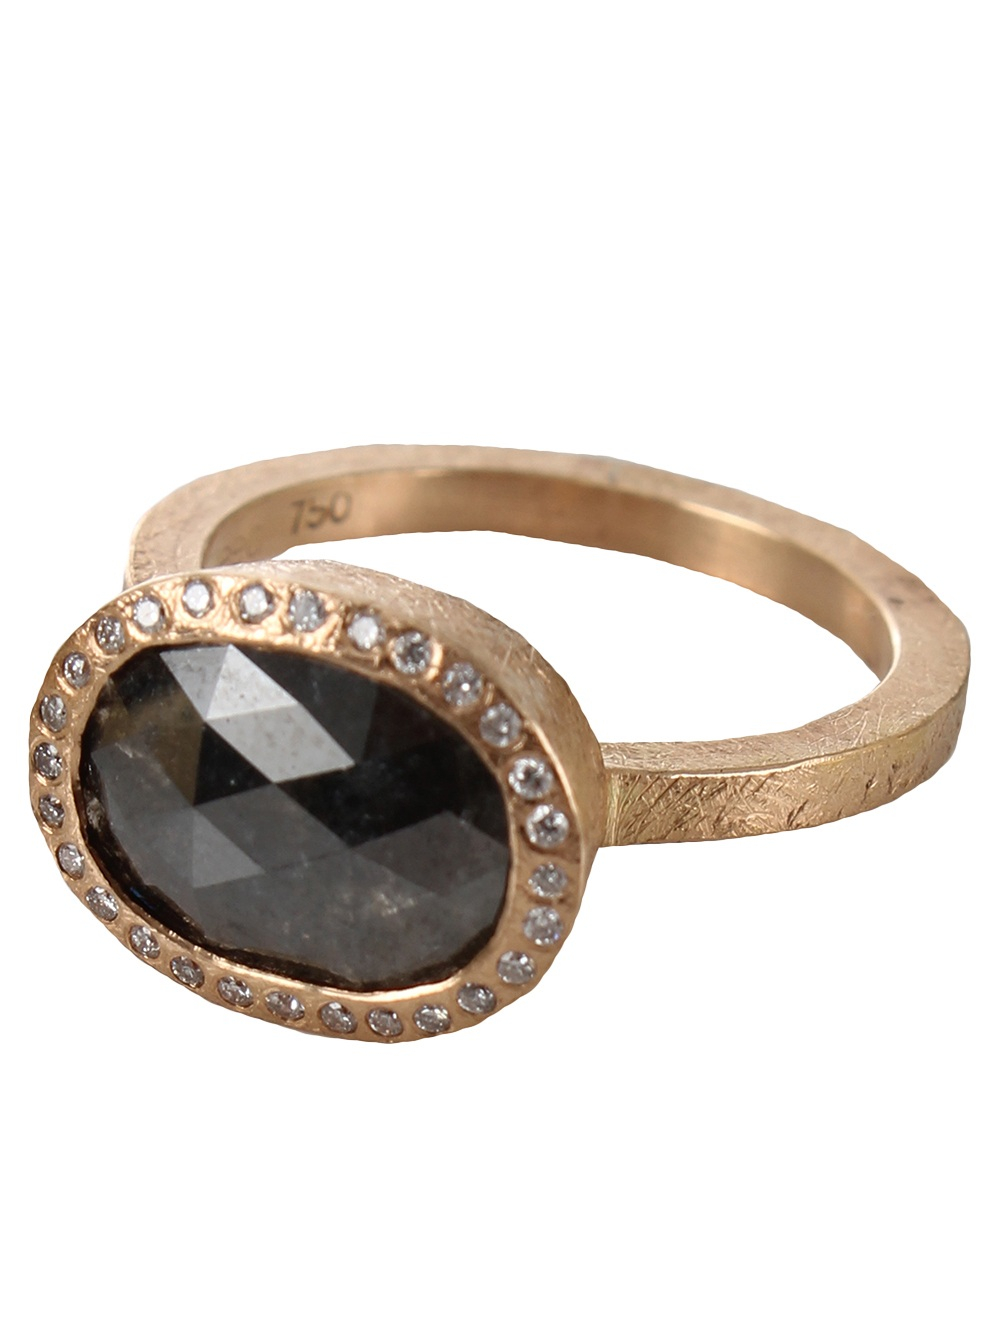 Todd reed 39 fancy 39 diamond ring in gray lyst for Todd reed